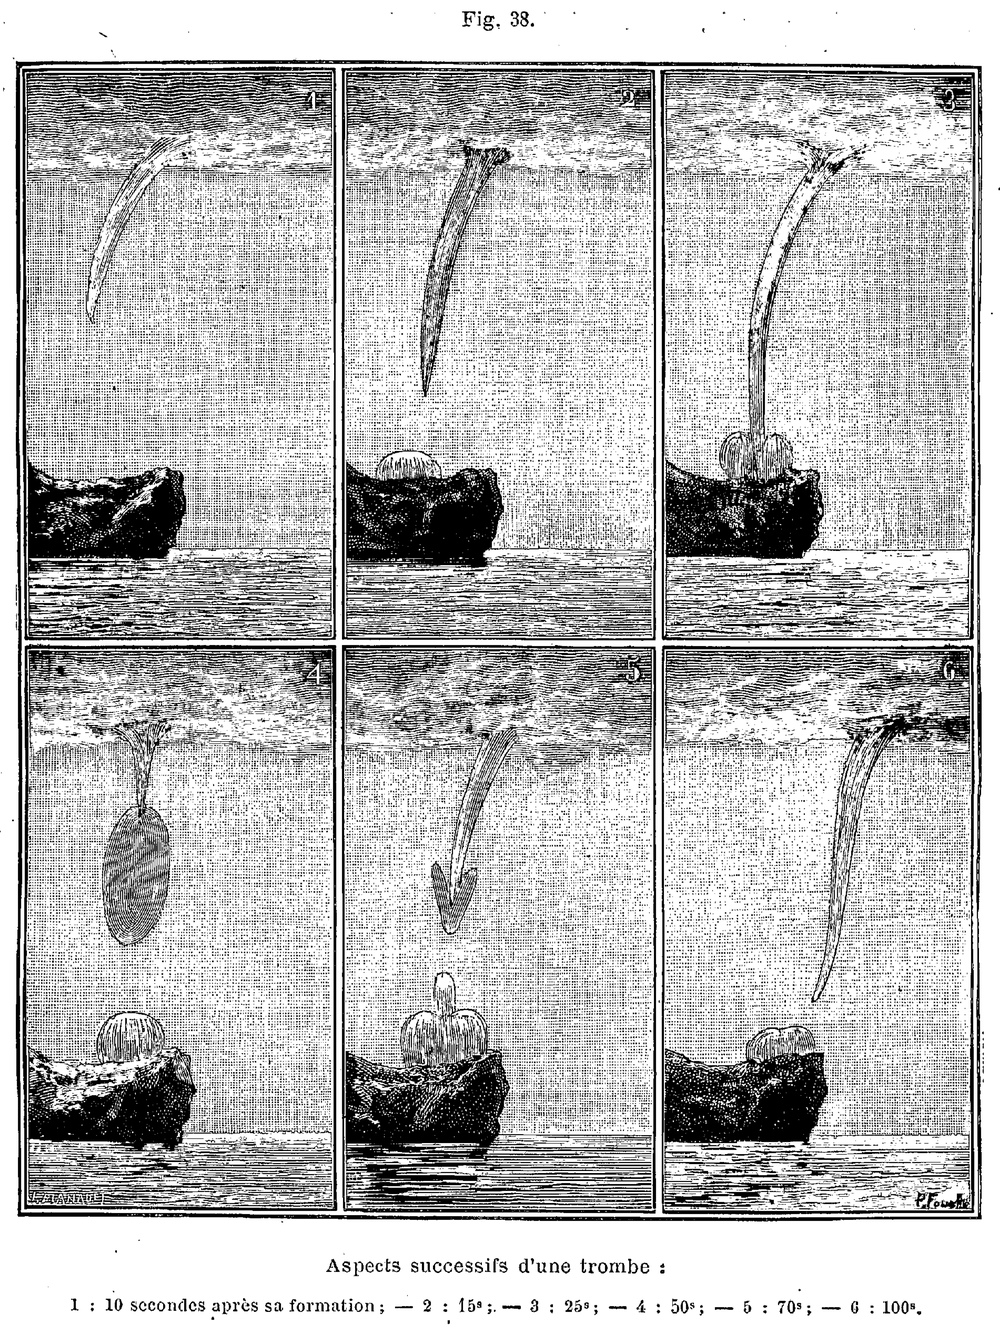 "The evolution of one of the five waterspouts observed by Mr. Léotard and Payan, members of the Flammarion Scientific Society, on 17 September 1887 at 5:30 pm south of Marseille toward Planier Lighthouse and Cap Croisette. source: Fig. 38 from ""Trombes observées sur la mer"". L'Astronomie, Tome VII, p. 73–75. via BnF Gallica"